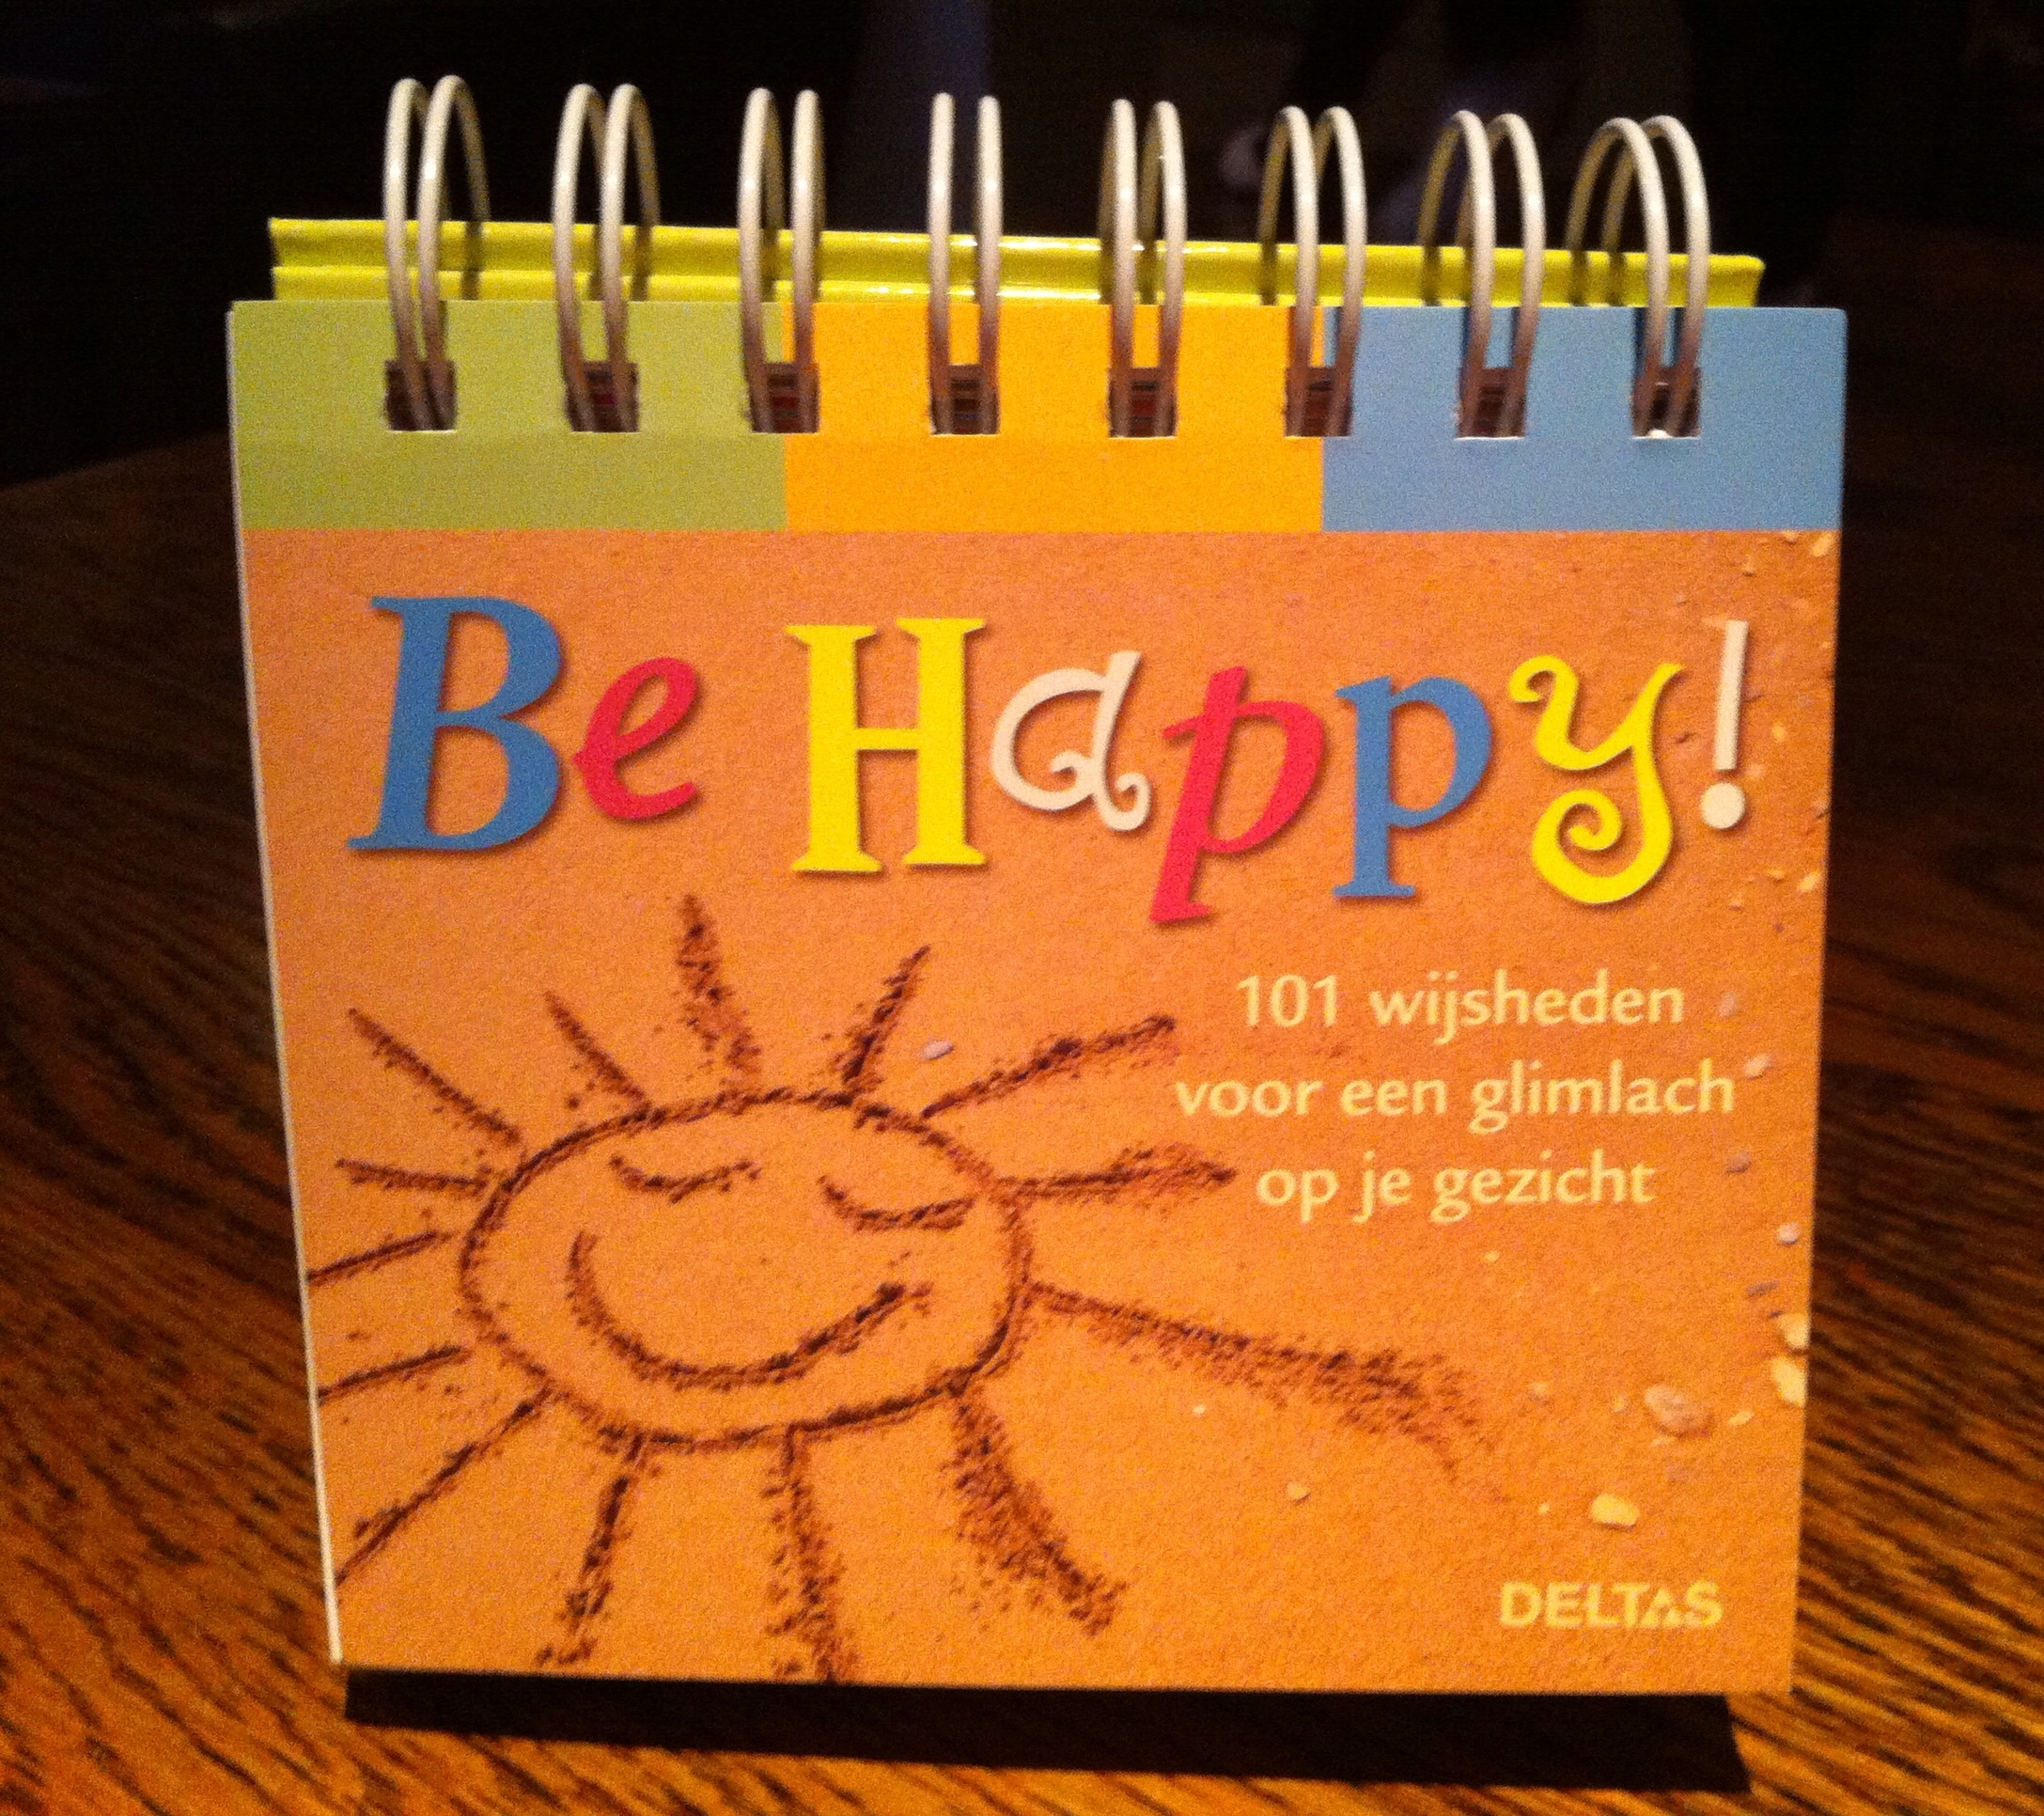 Be Happy 101 uitspraken